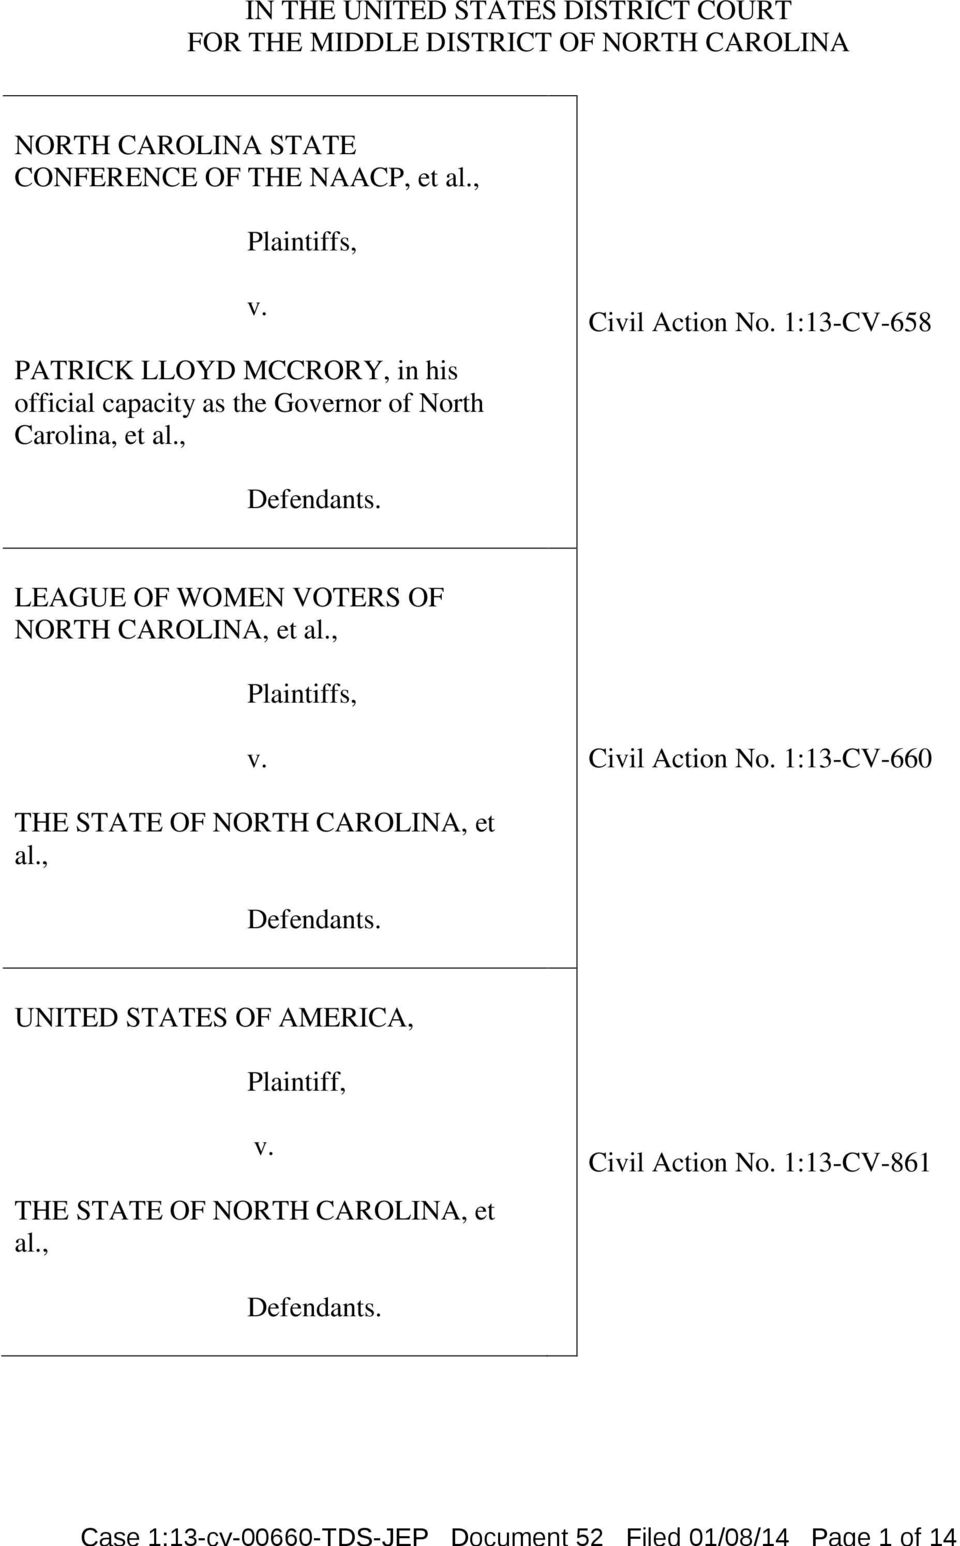 , Civil Action No. 1:13-CV-658 Defendants. LEAGUE OF WOMEN VOTERS OF NORTH CAROLINA, et al., Plaintiffs, v. Civil Action No. 1:13-CV-660 THE STATE OF NORTH CAROLINA, et al.